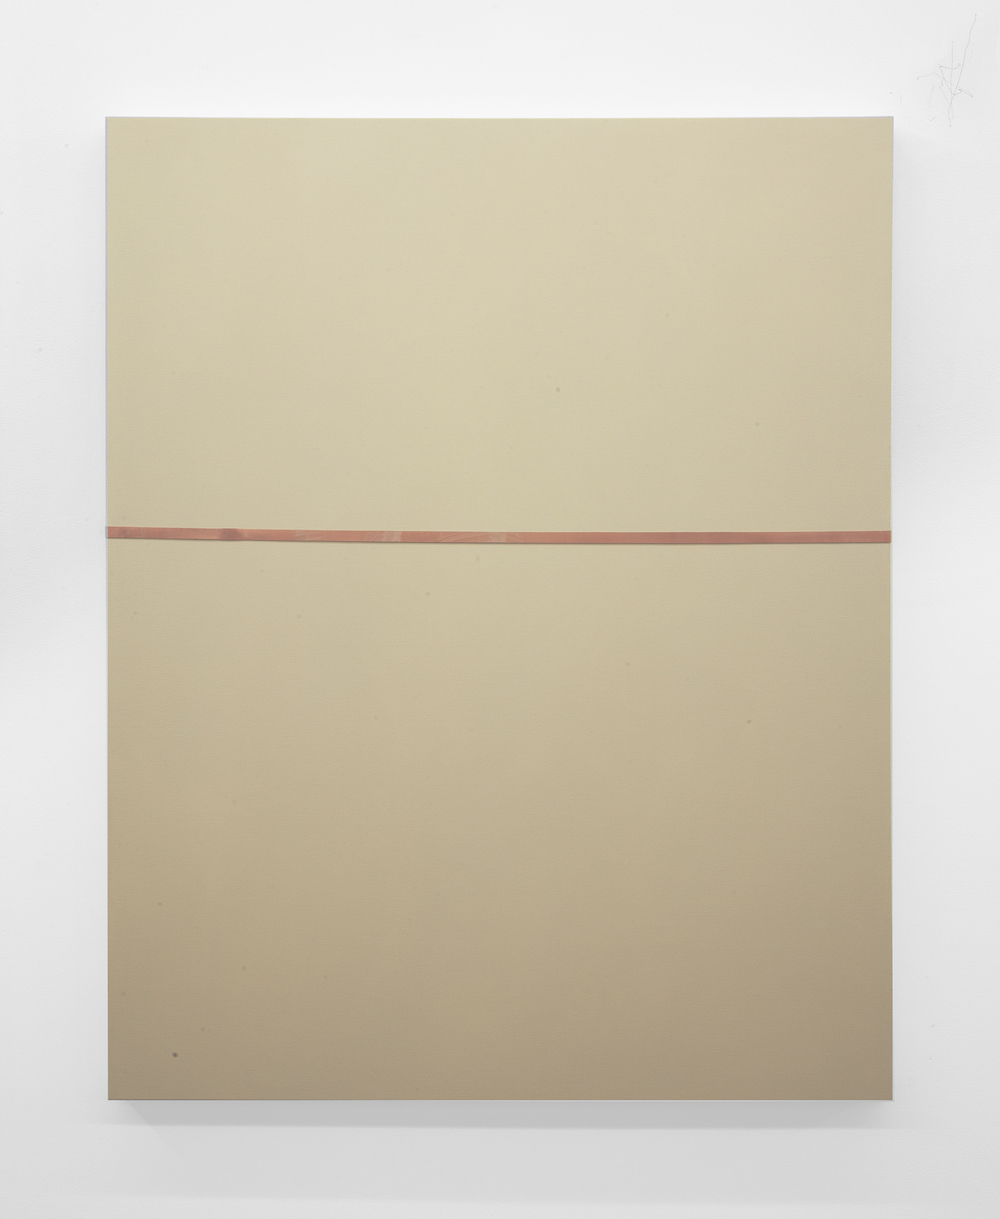 Tan Line  2013 Oil, industrial rubber band on canvas 60 x 48 inches